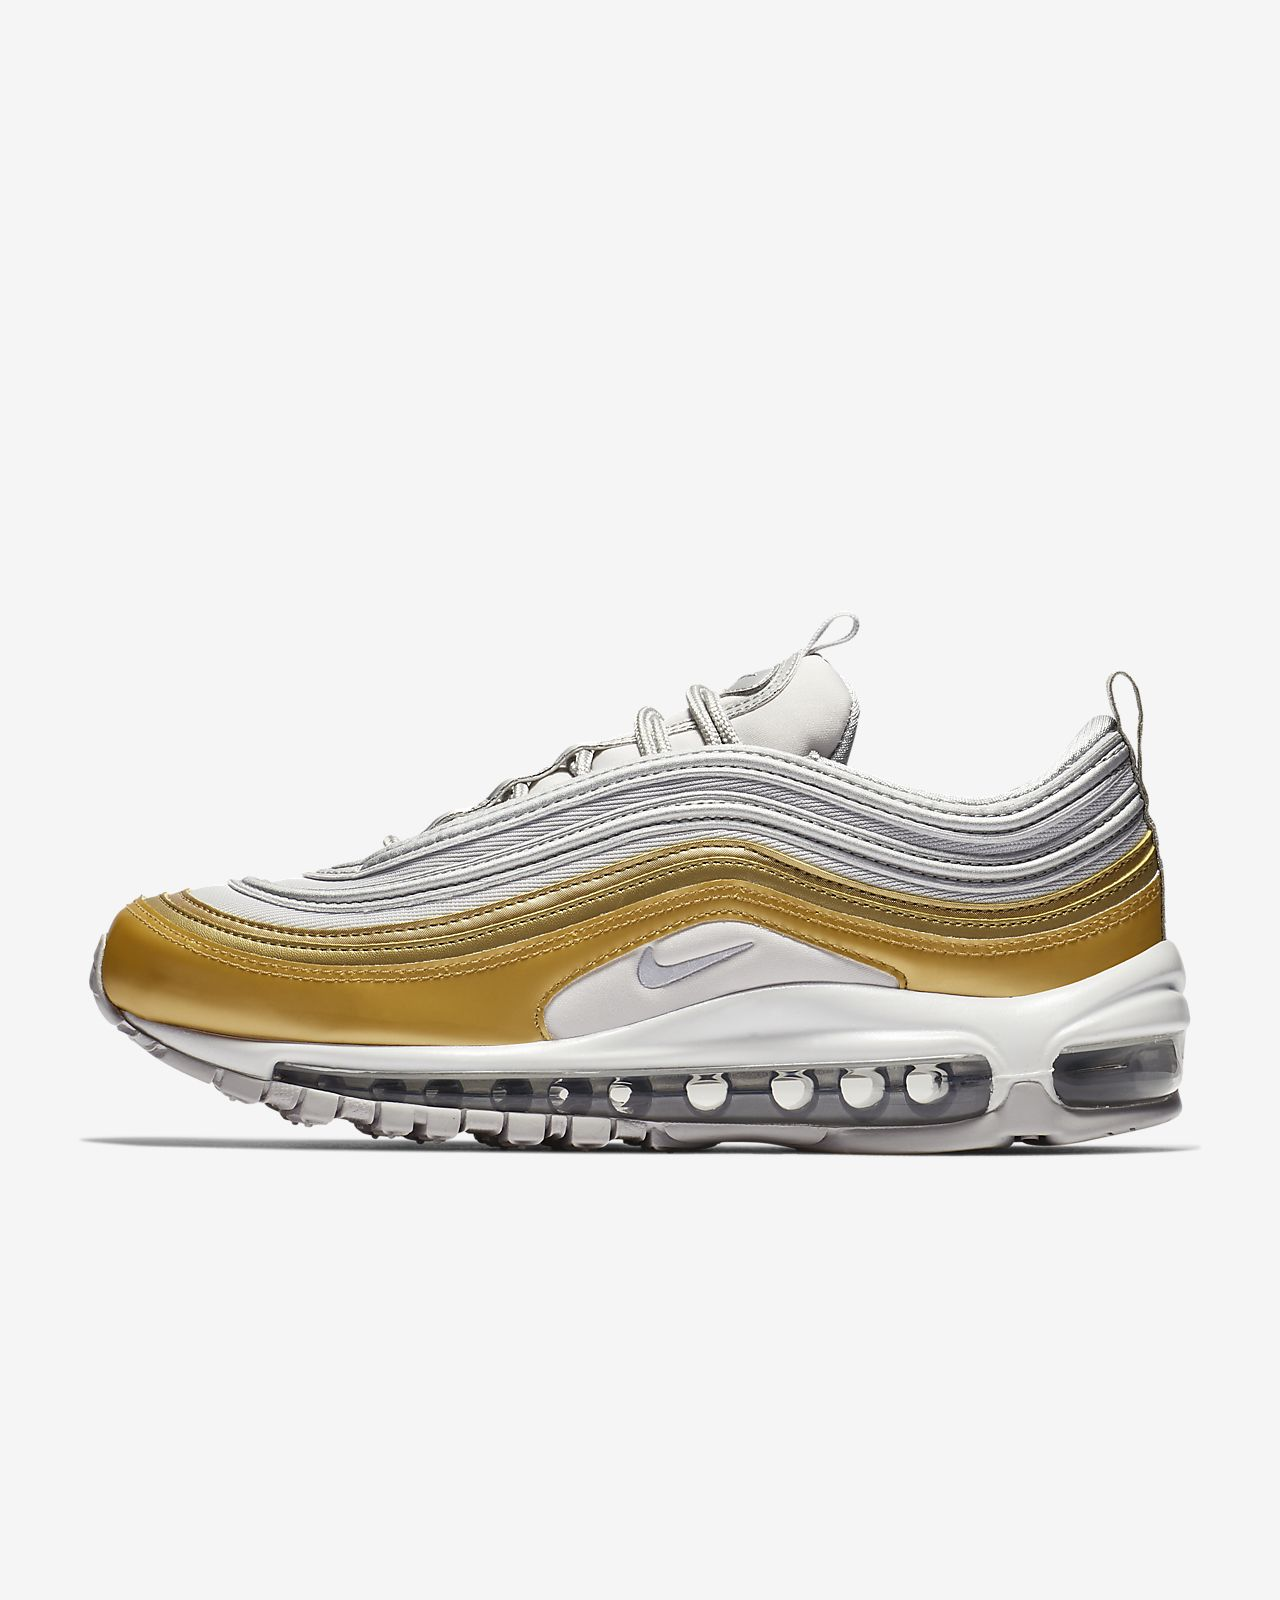 ZAPATILLAS W AIR MAX 97 SE nike